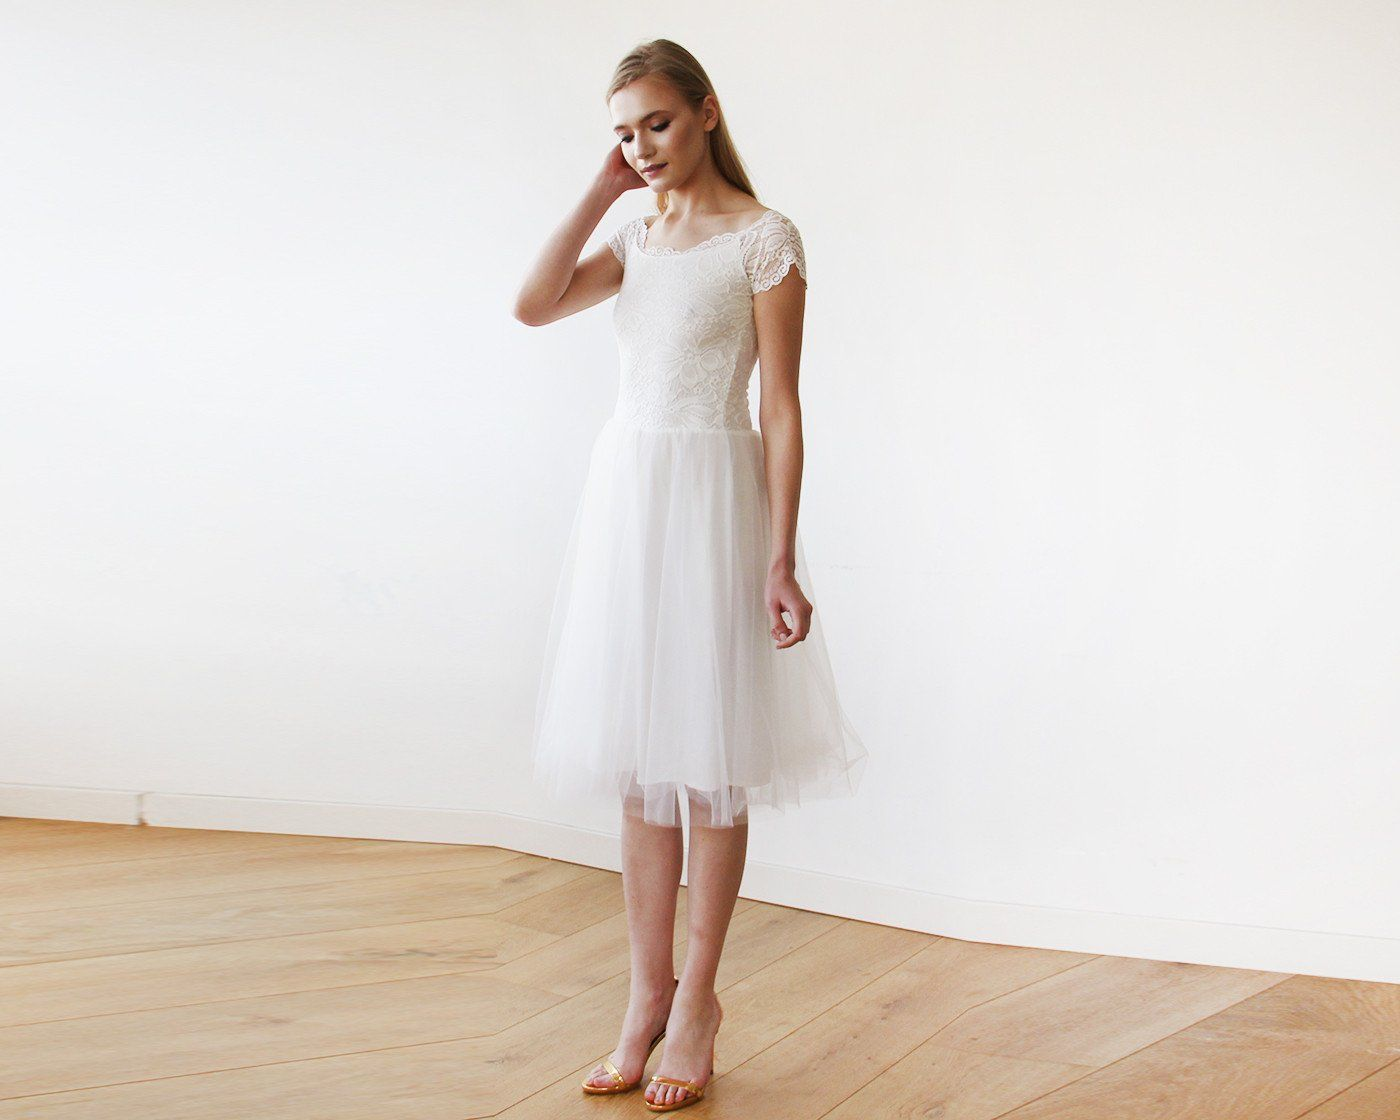 Ivory Off-the-Shoulders Tulle & Lace Midi Short Sleeves Dress SALE 1153 - Blushfashion